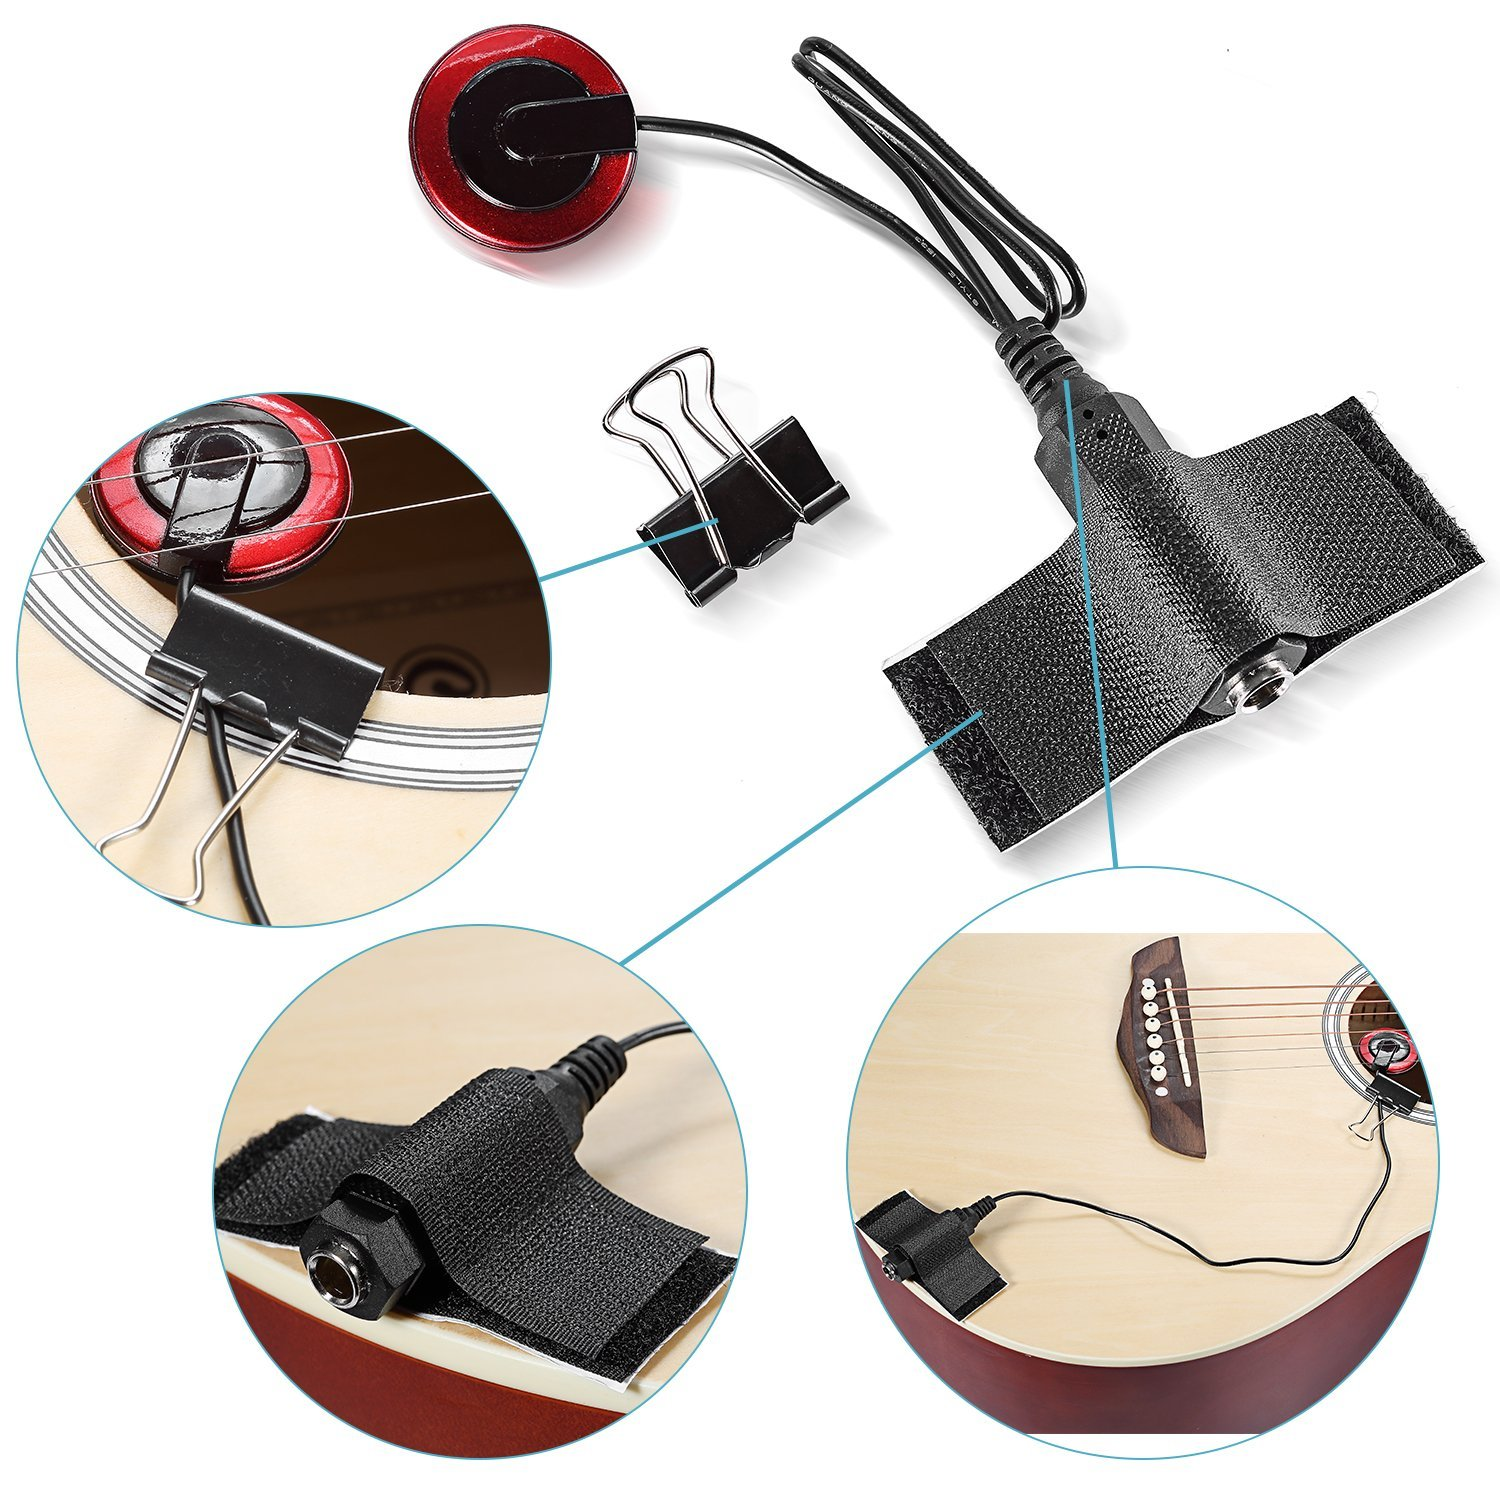 5-Pack Piezo Contact Microphone Pickups for Guitar, Violin, Banjo, OUD, Ukulele, Mandolin, Cello and More, Pick up Clear and A